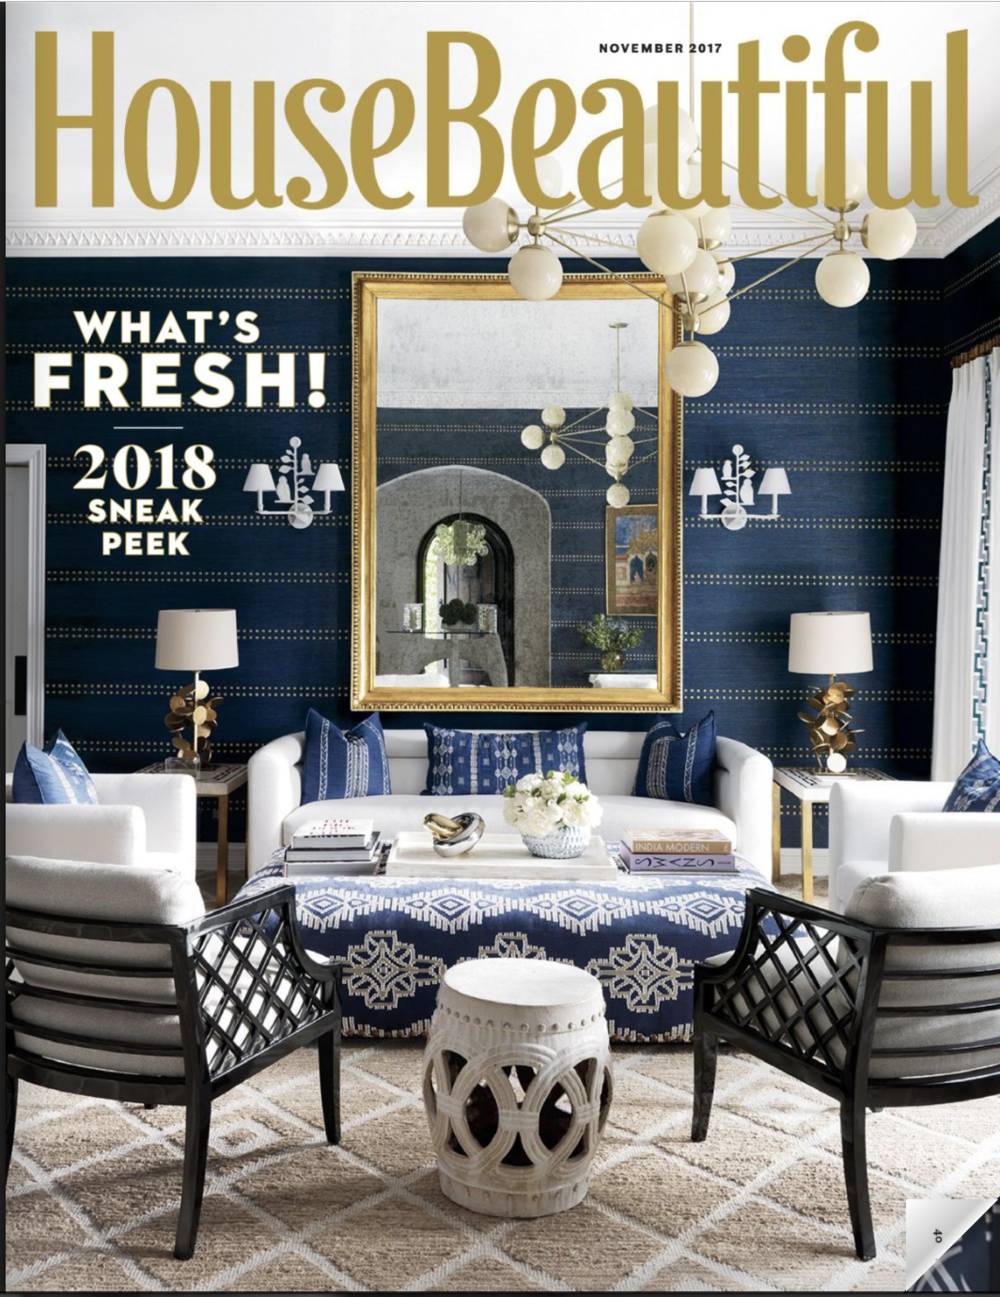 HOUSE BEAUTIFUL // NOV 2017